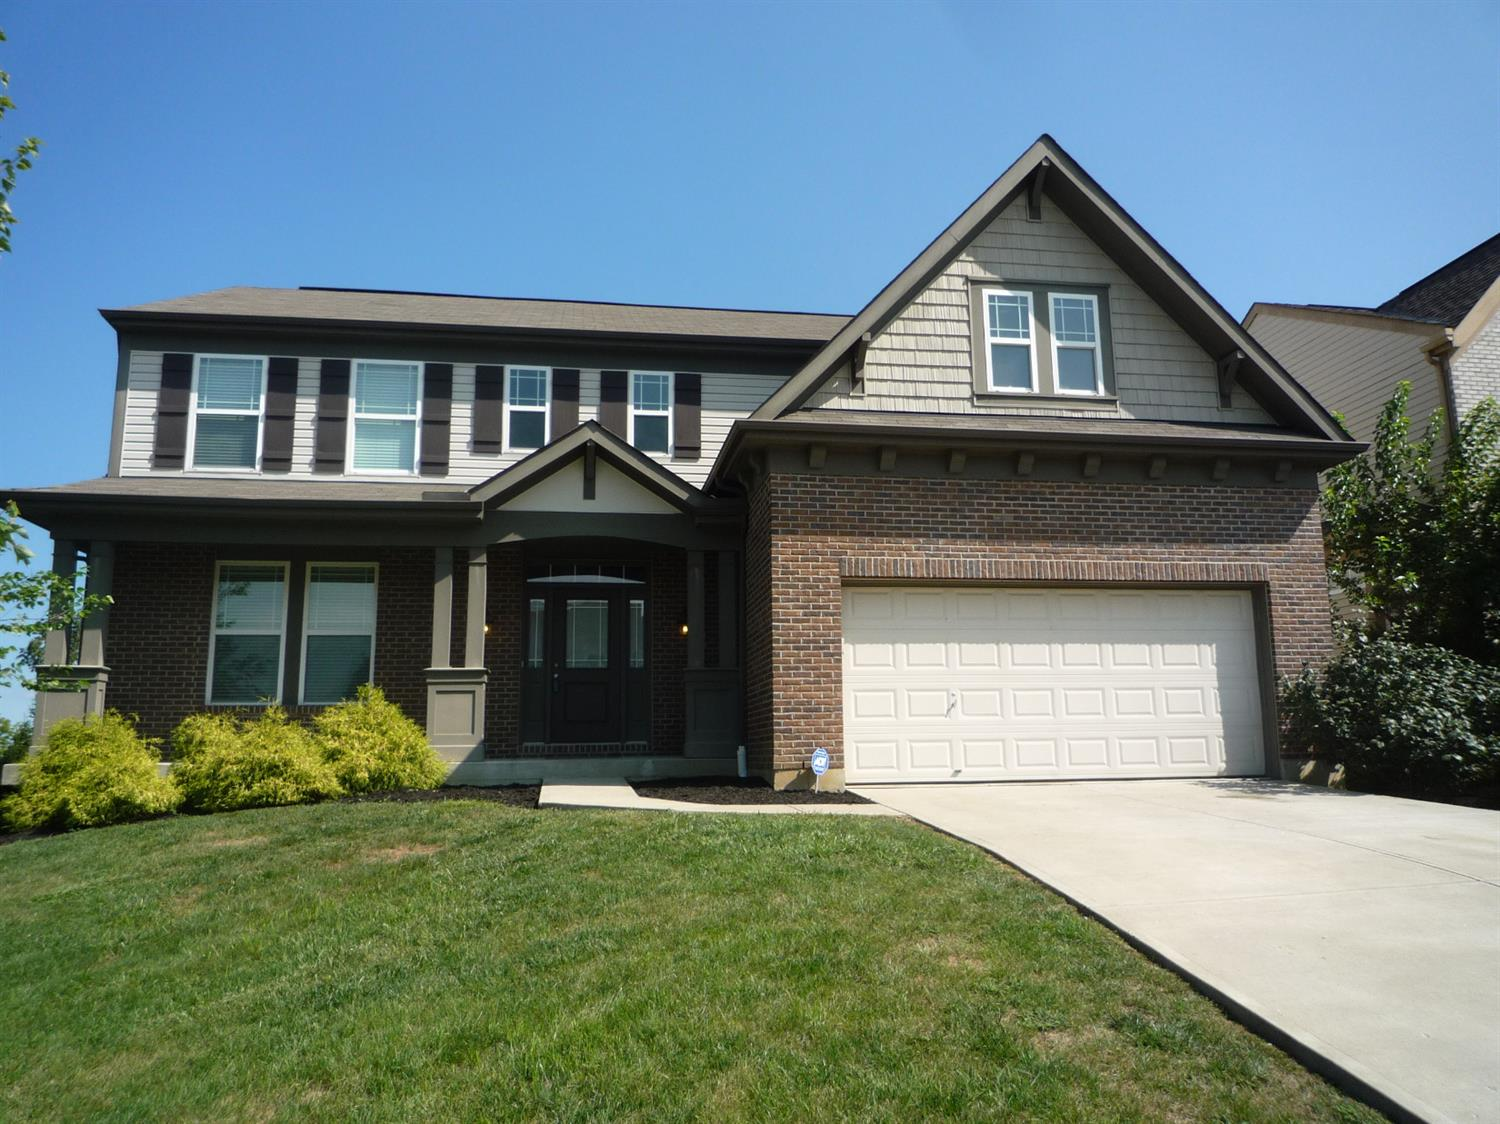 Photo 1 for 2760 Chateau Ct Union, KY 41091